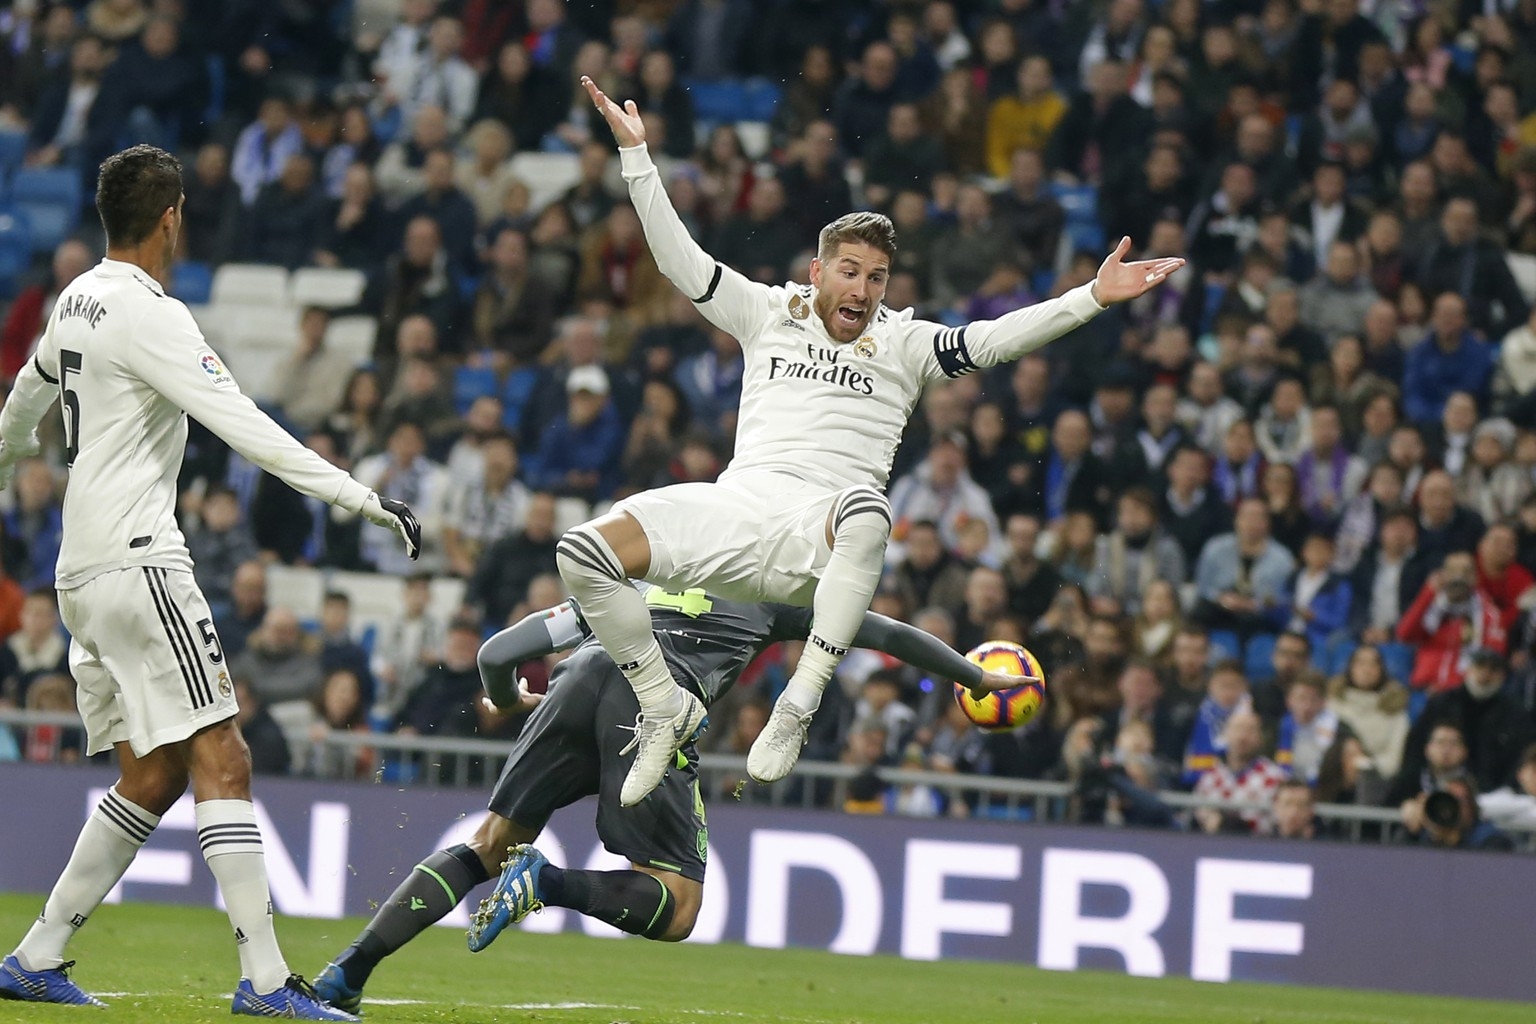 Real Madrid's Sergio Ramos jumps, with Real Sociedad's Asier Illarramendi, obscured behind, during a Spanish La Liga soccer match between Real Madrid and Real Sociedad at the Santiago Bernabeu stadium in Madrid, Spain, Sunday, Jan. 6, 2019. (AP Photo/Paul White)